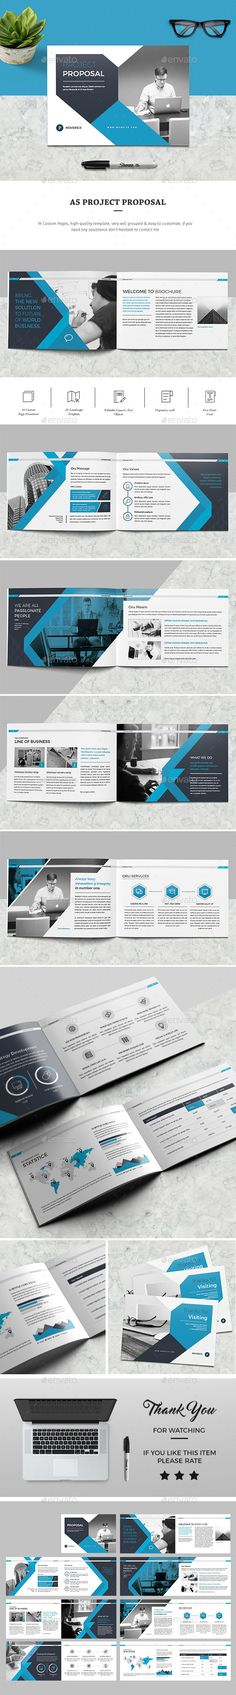 A5 Proposal — InDesign INDD #agency porposal #indesign templates • Download ➝ https://graphicriver.net/item/a5-proposal/19419490?ref=pxcr